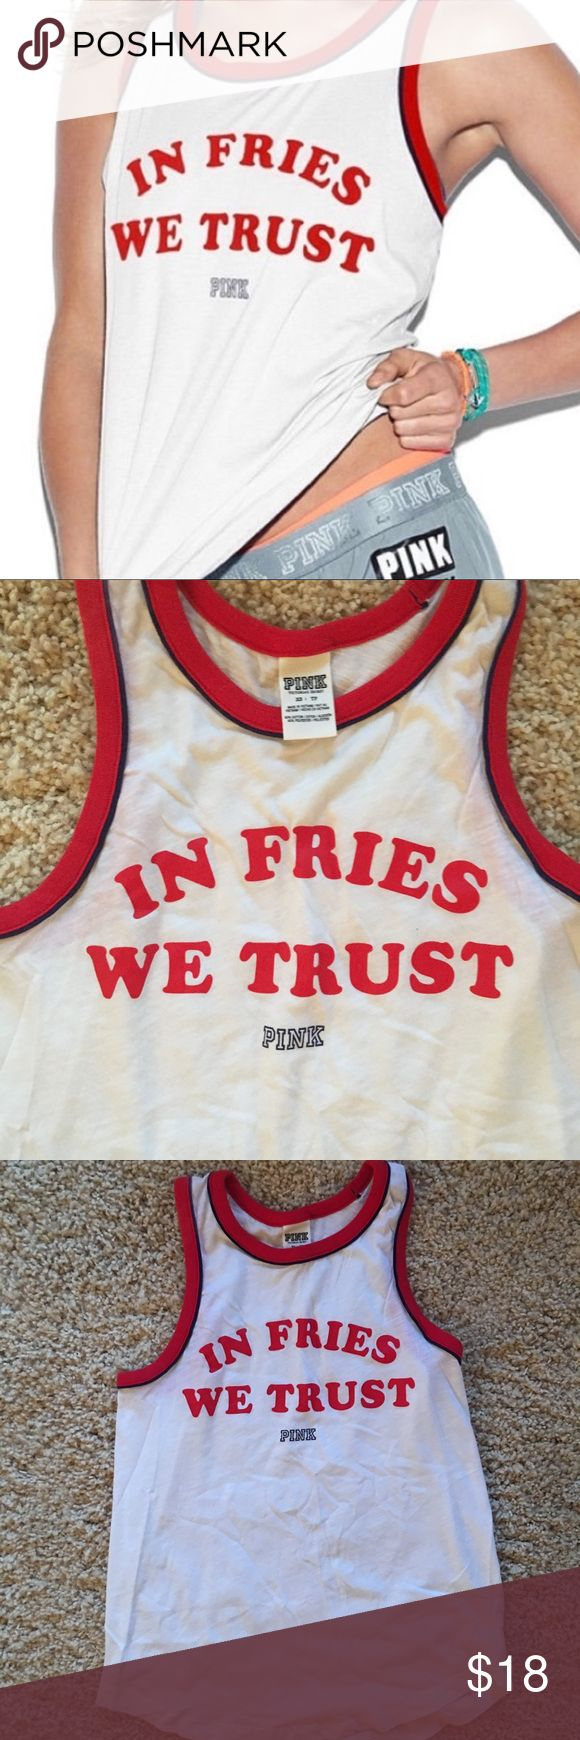 """🇺🇸 Victoria's Secret """"In Fries We Trust"""" Tank Size XS but fits loose, patriotic tank from VS ❤️💙 PINK Victoria's Secret Tops Tank Tops"""